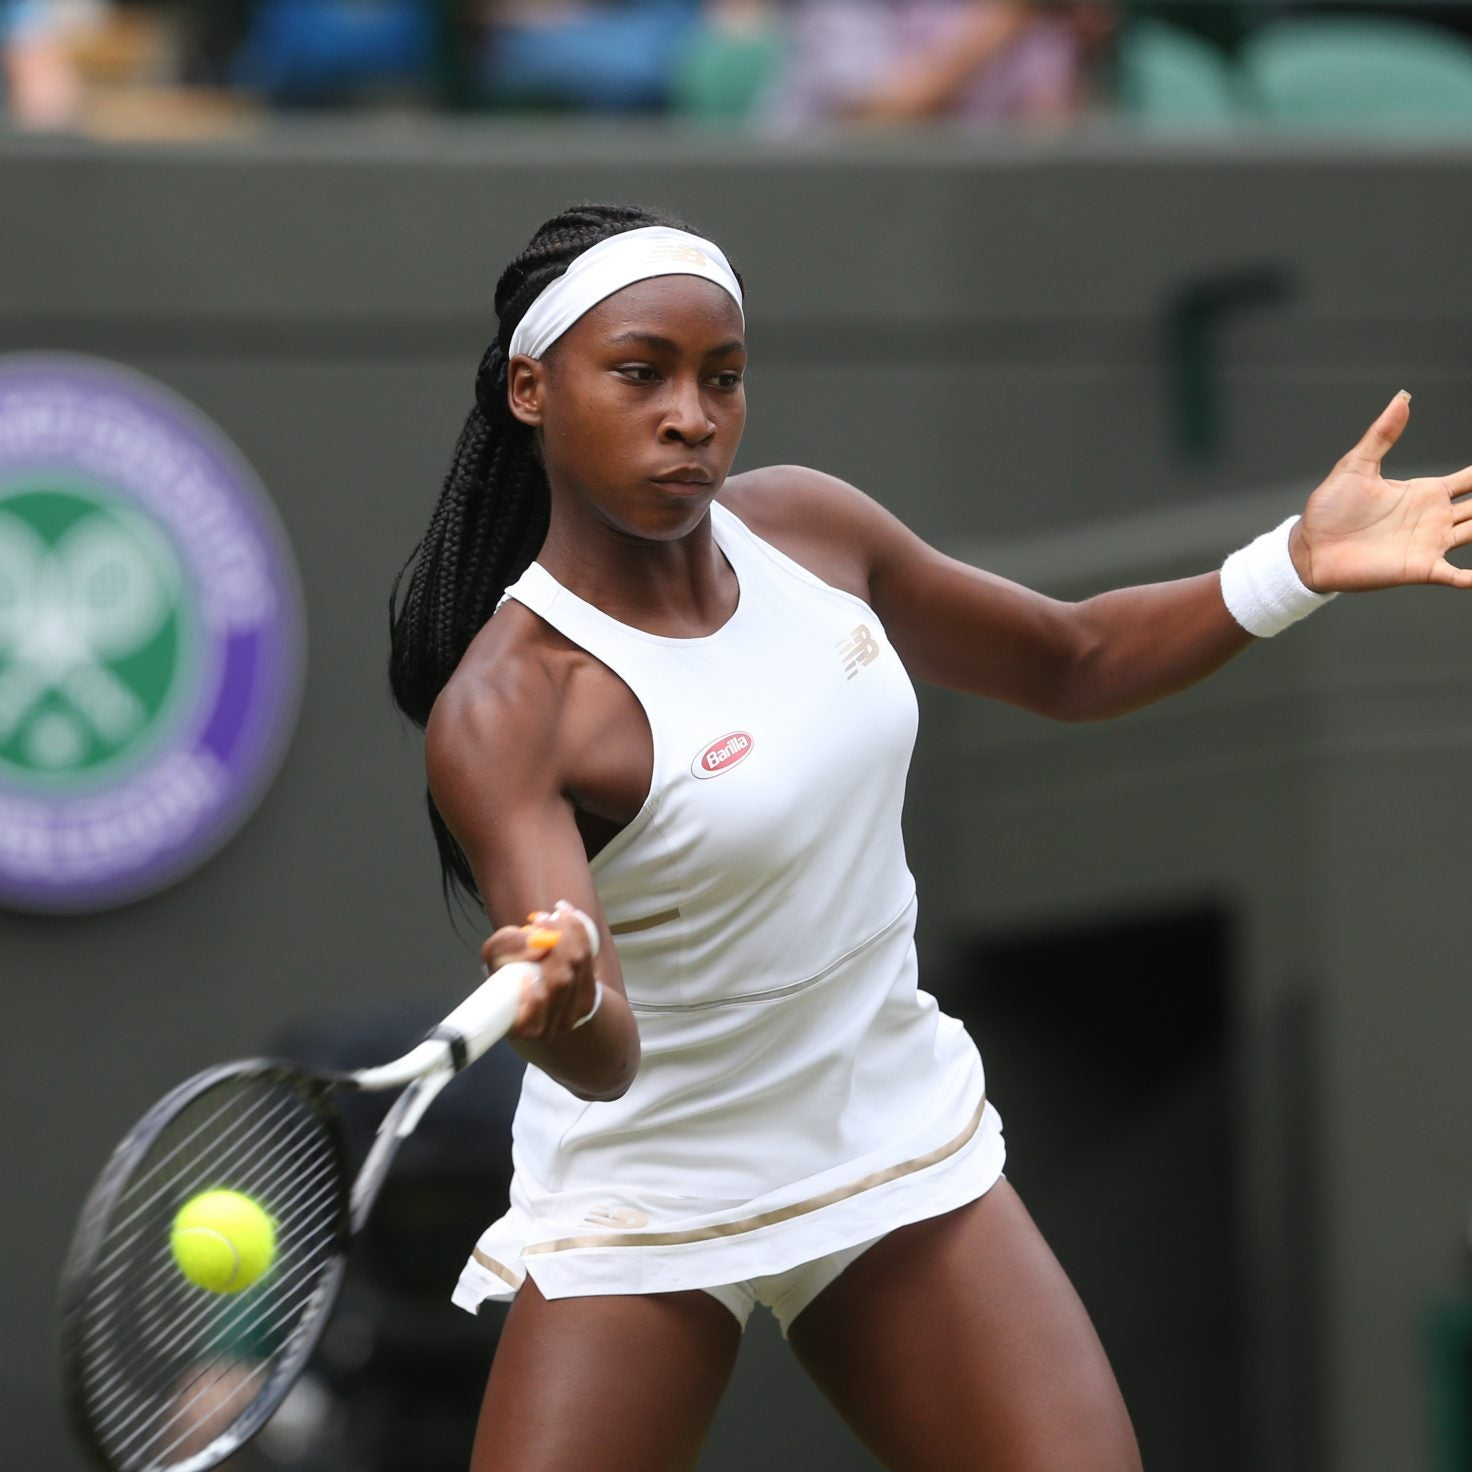 Cori Gauff, The Youngest Player To Qualify For Wimbledon, Defeats Venus Williams